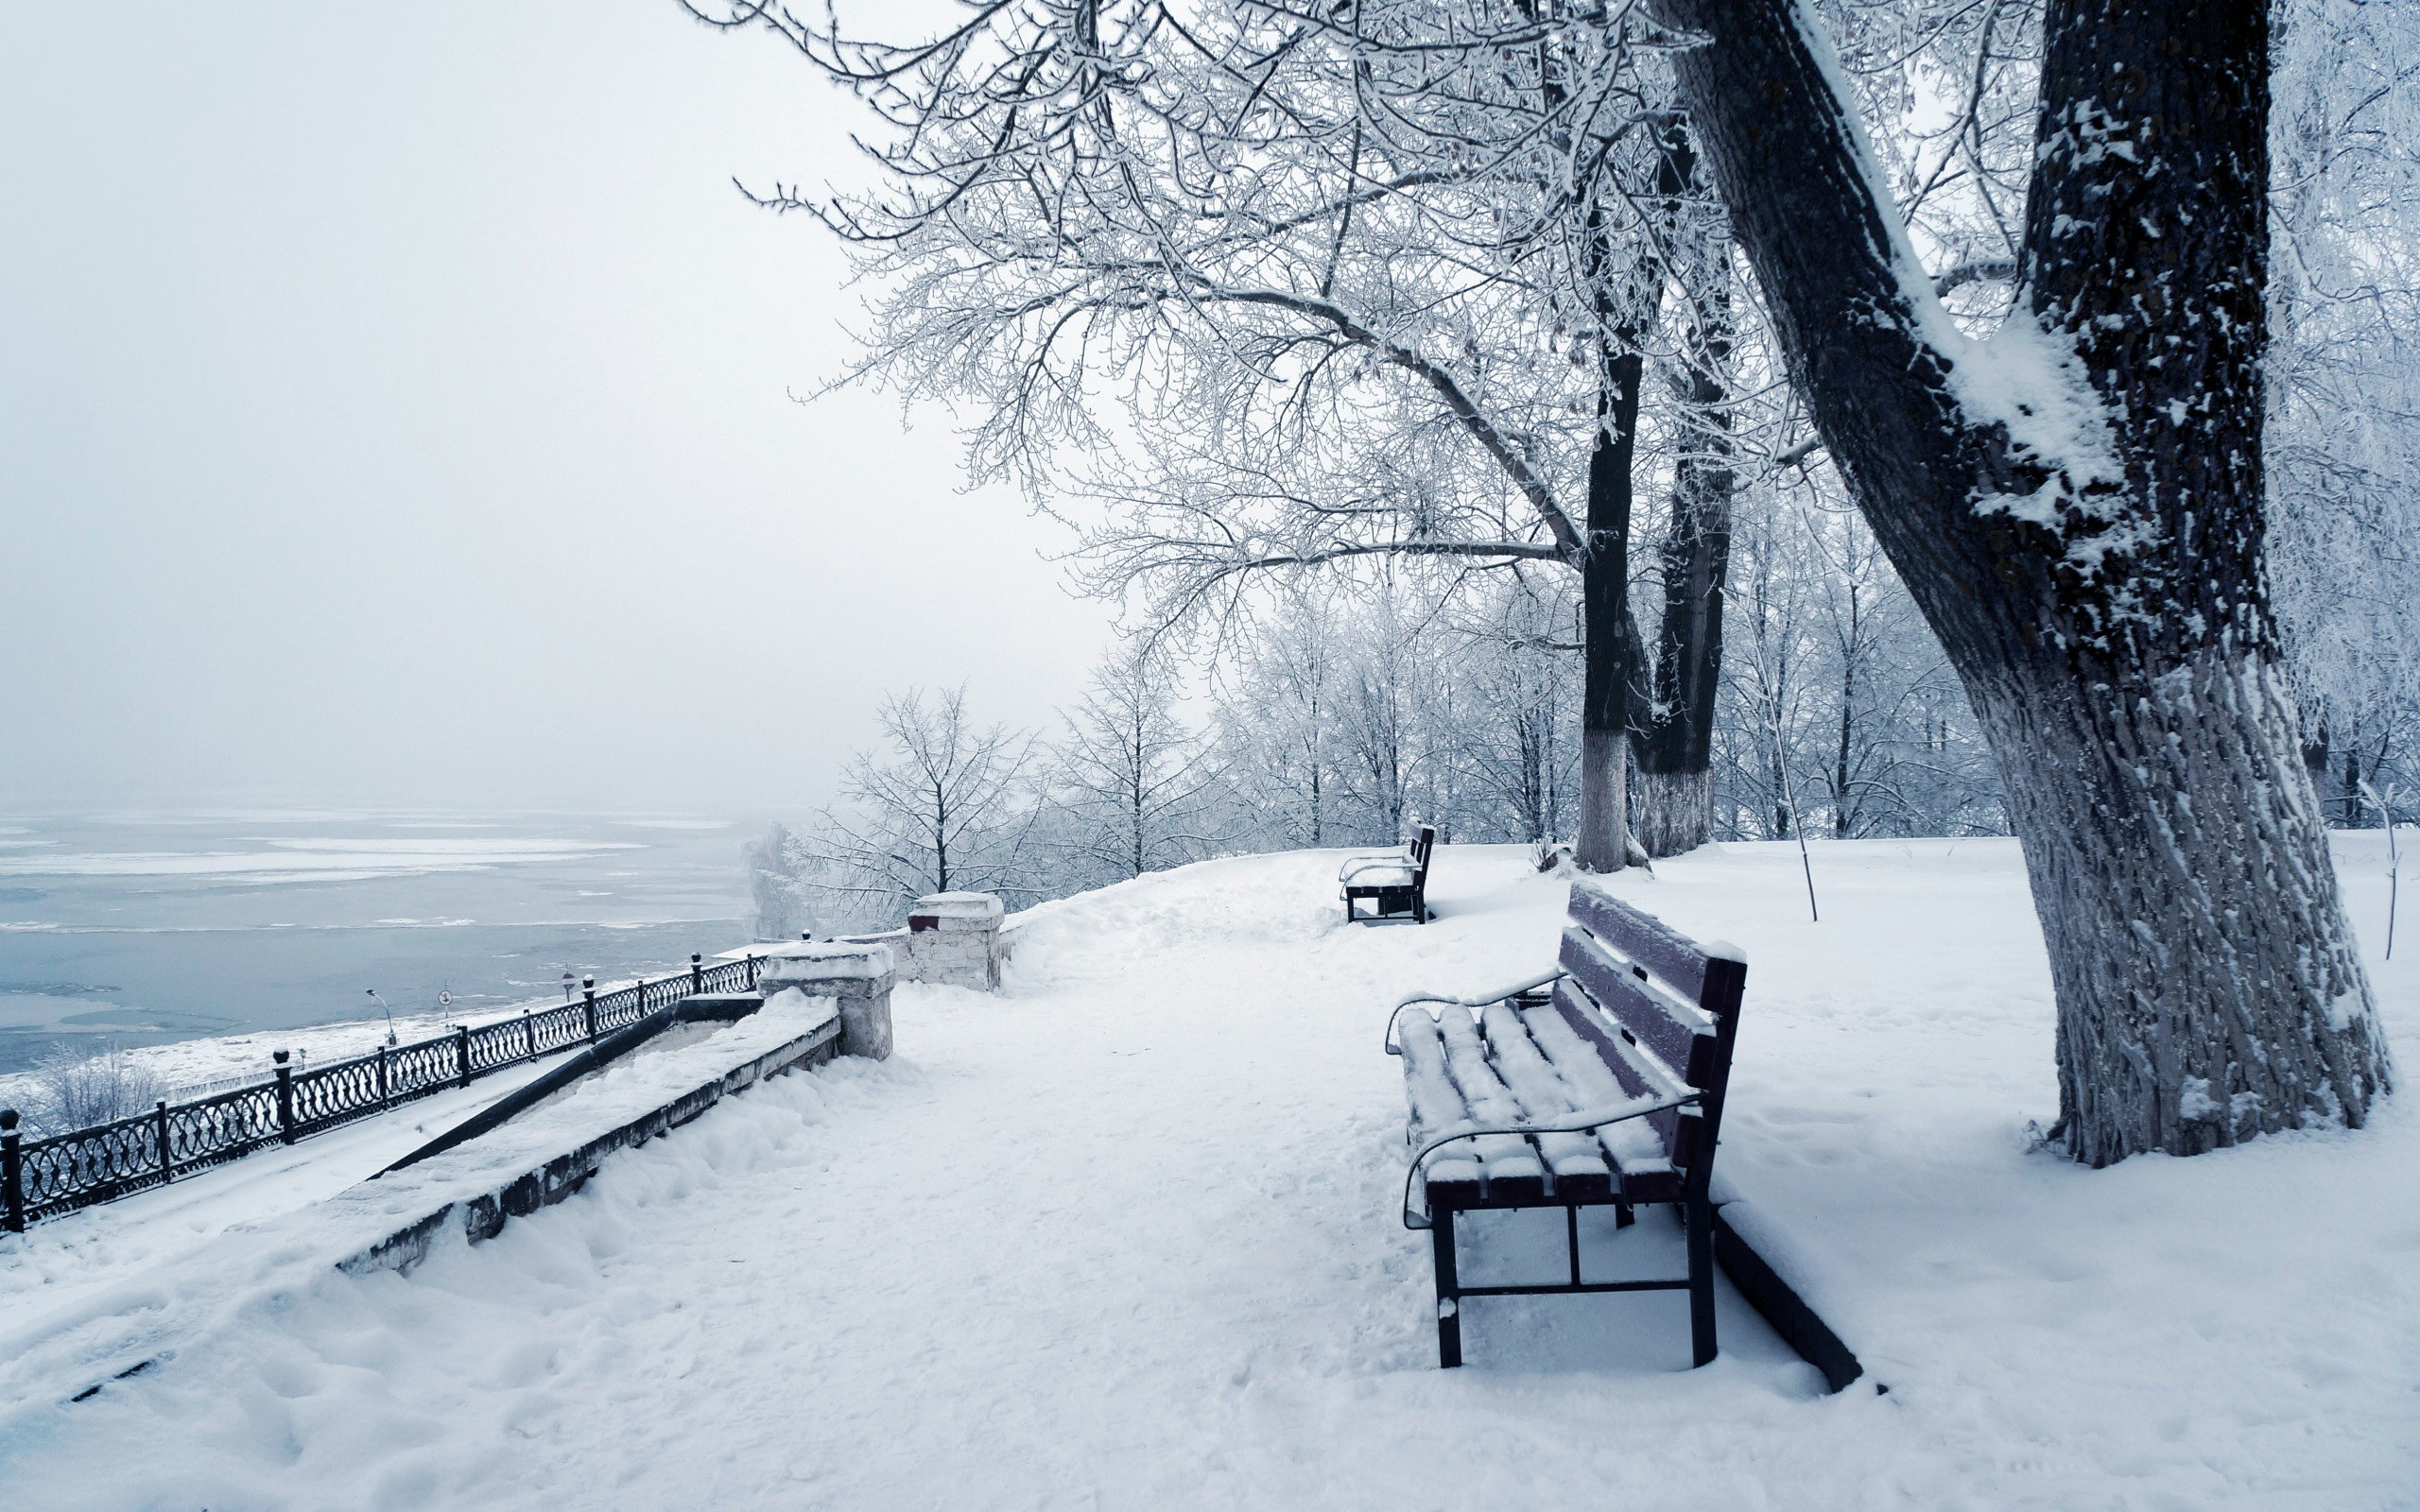 Winter Wallpaper High Quality Resolution Is Cool Wallpapers